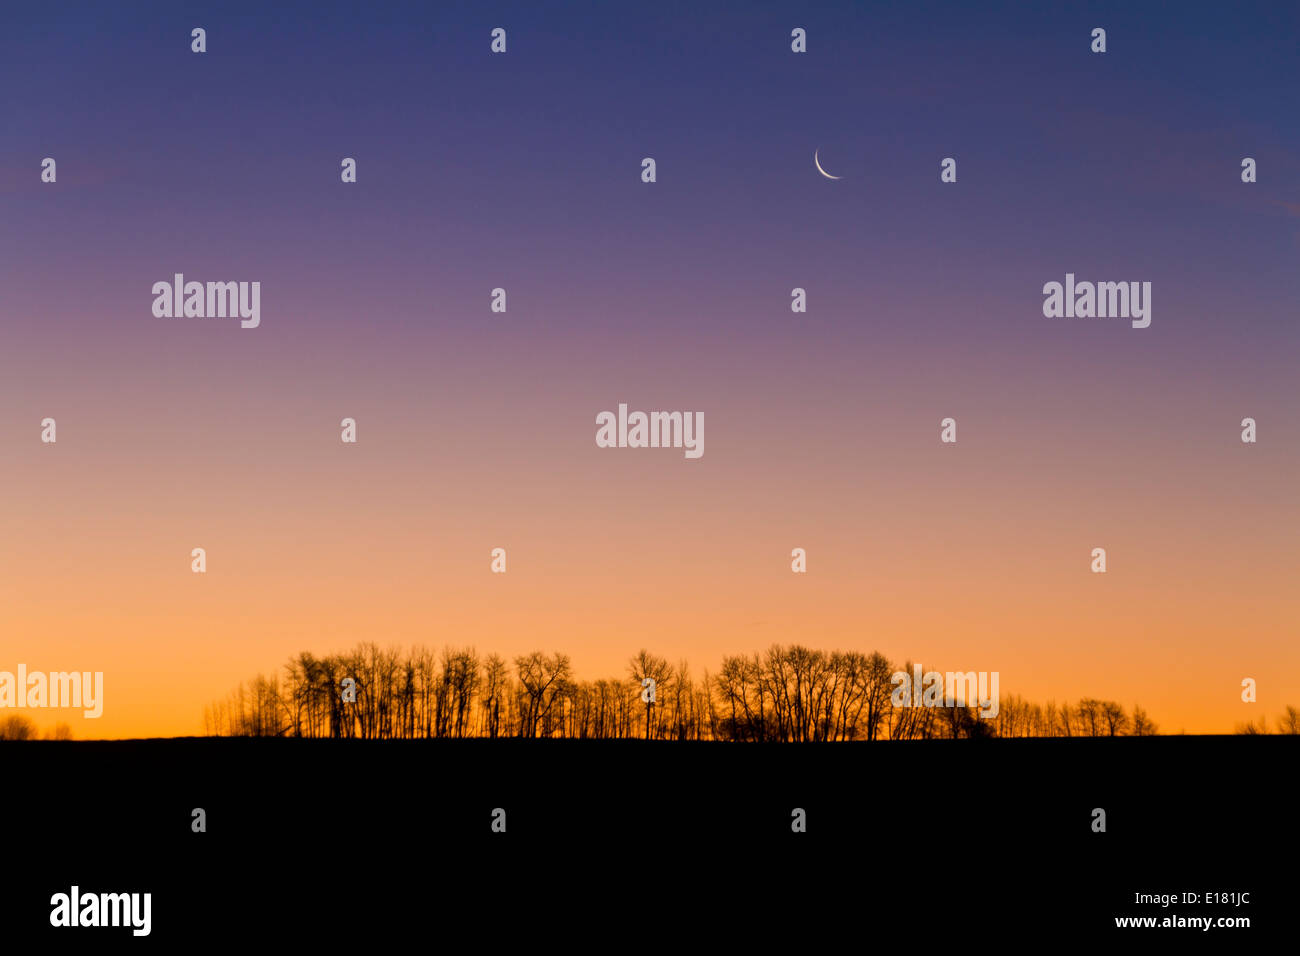 Waning crescent Moon at dawn from home, Nov. 4, 2010. Taken with 18-200mm lens and Canon 7D. Taken from southern Alberta, Canada - Stock Image